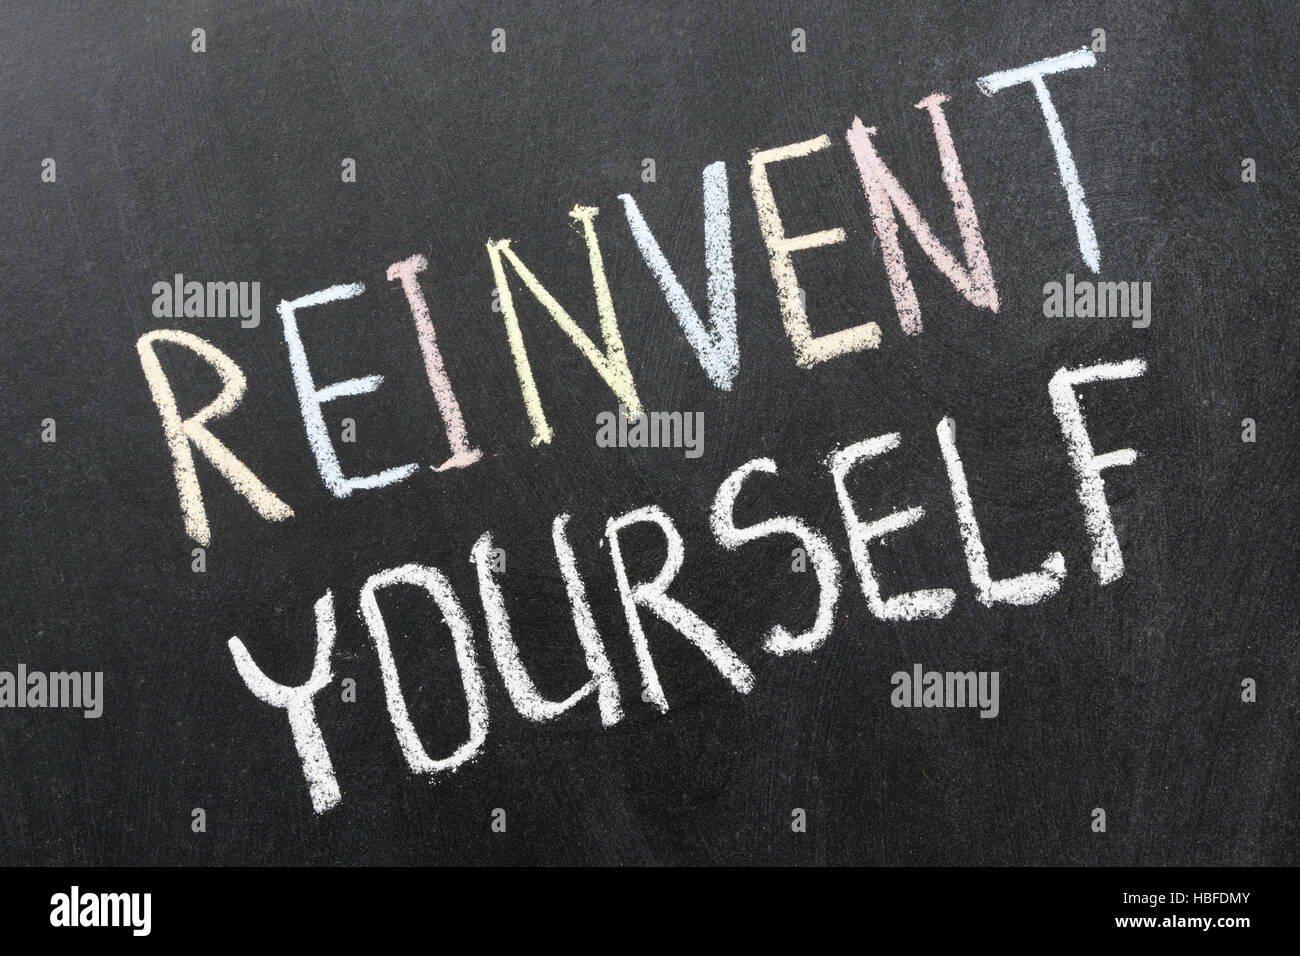 reinvent yourself - Stock Image